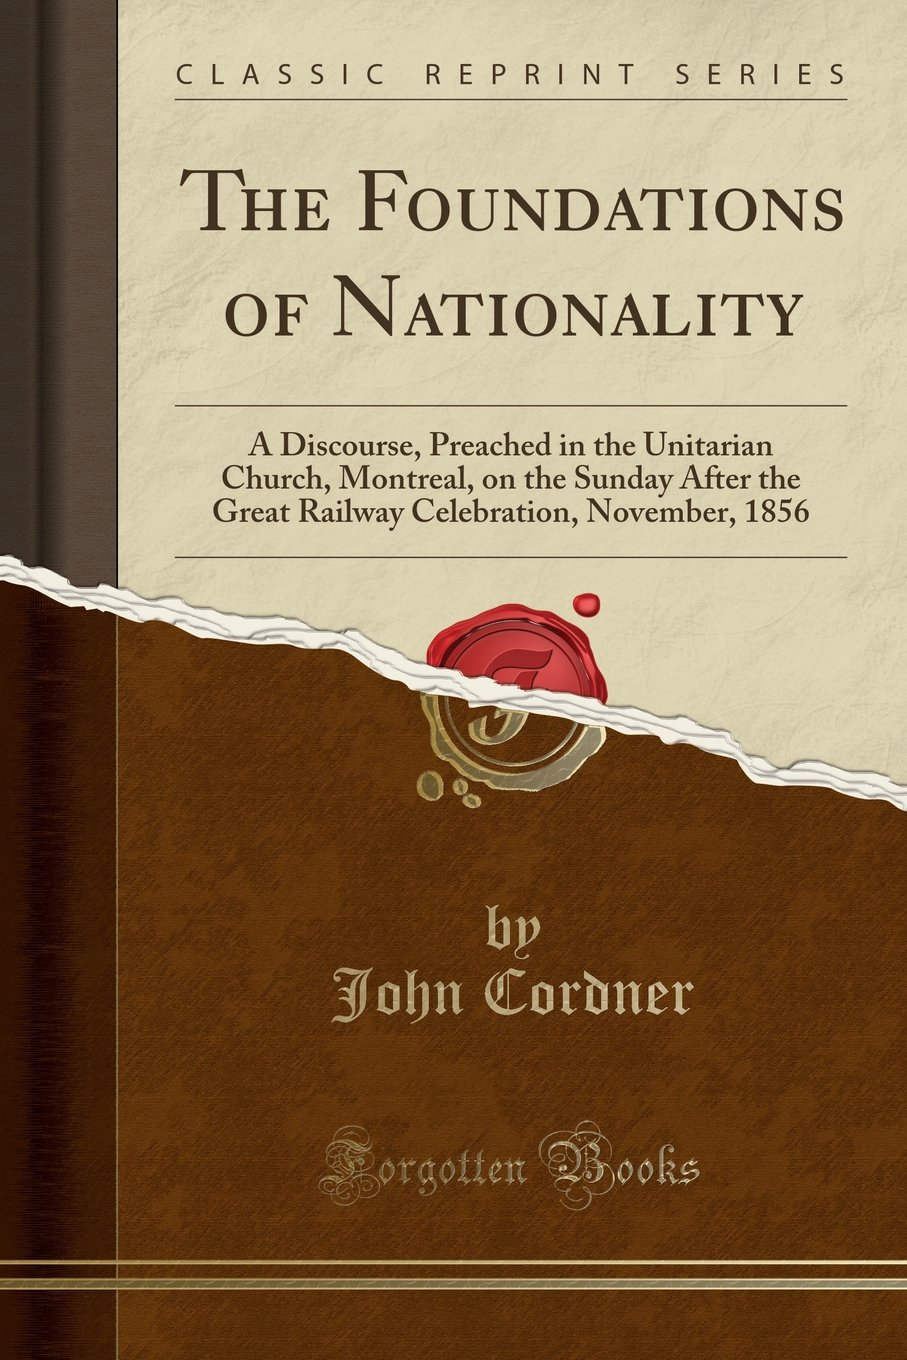 Download The Foundations of Nationality: A Discourse, Preached in the Unitarian Church, Montreal, on the Sunday After the Great Railway Celebration, November, 1856 (Classic Reprint) pdf